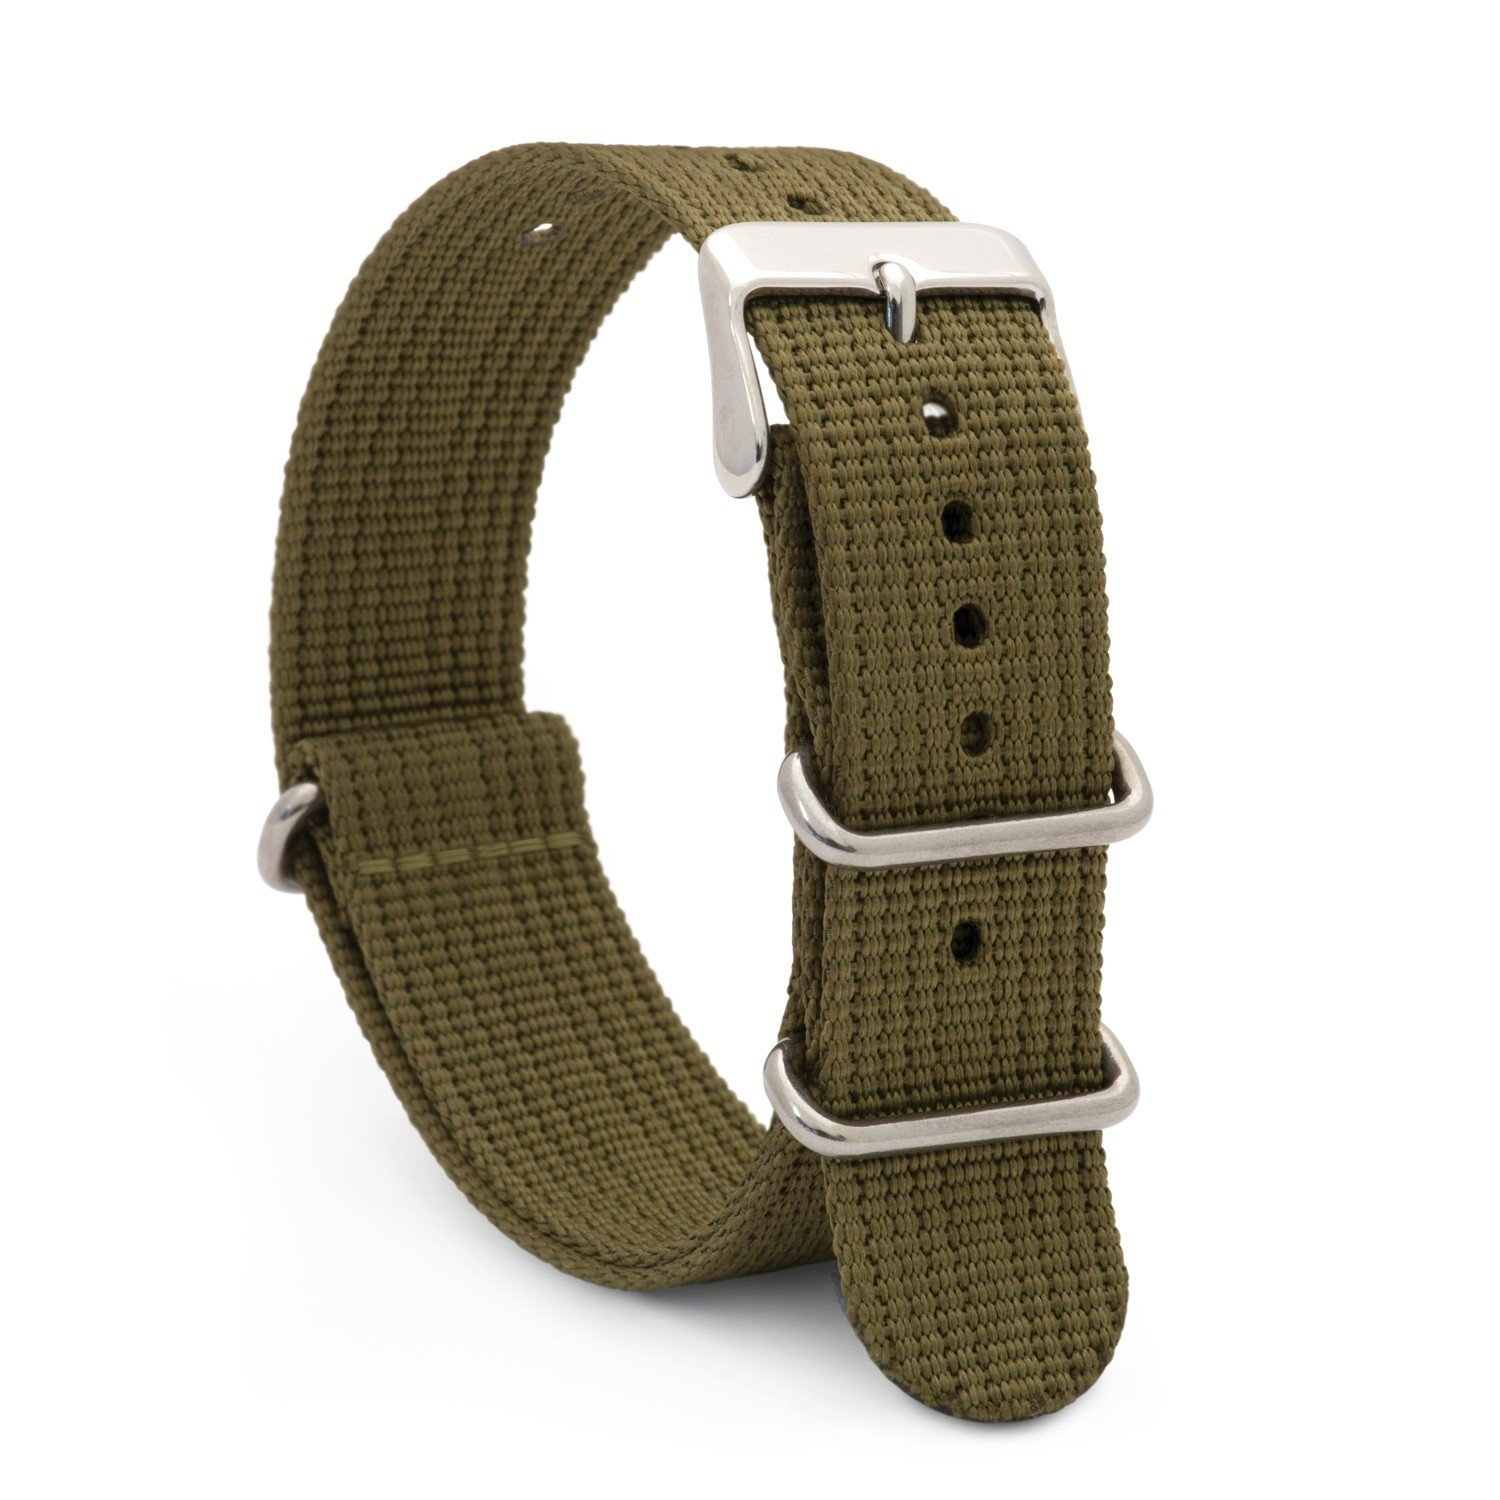 Speidel NATO Watch Band 20mm Army Green Woven Military Style Nylon Strap with Heavy Duty Stainless Steel Keepers and Buckle